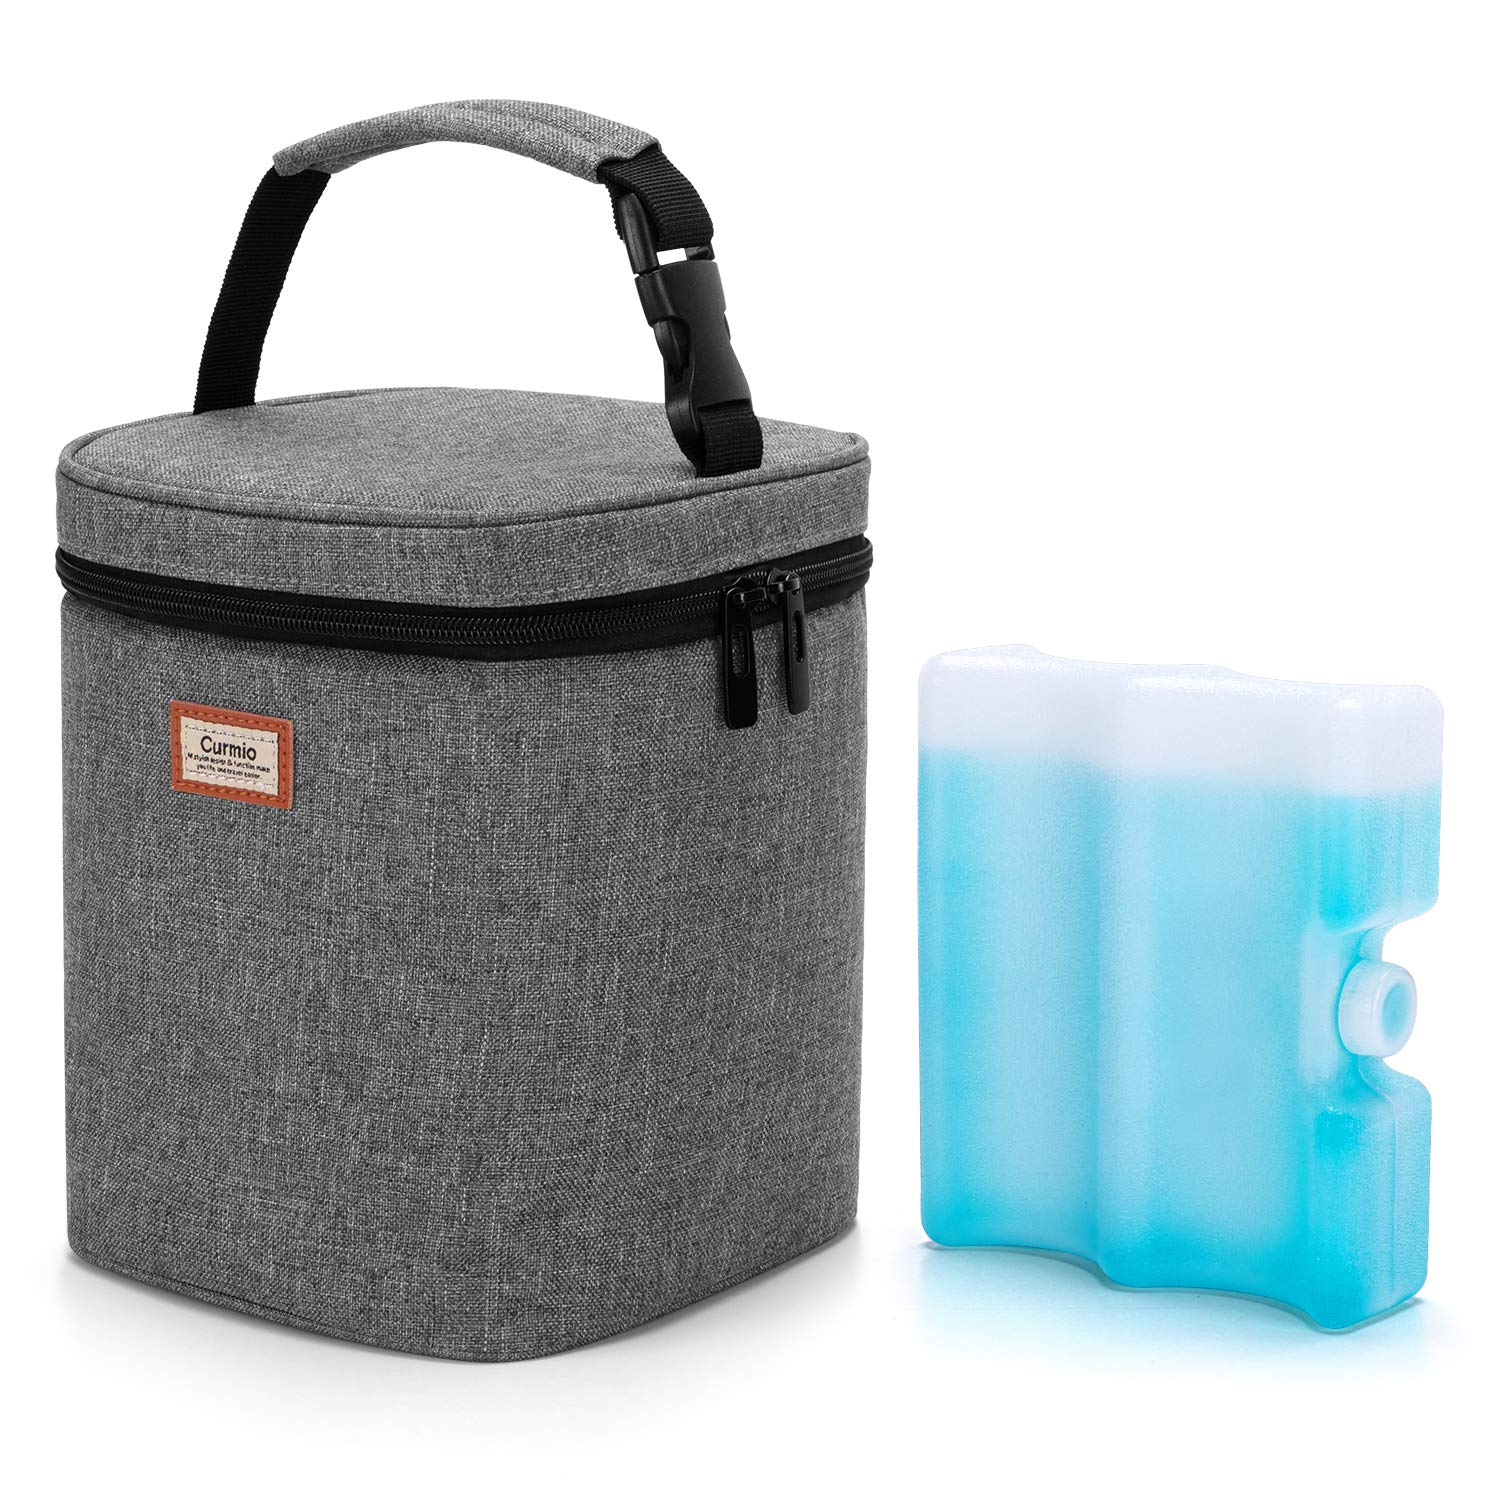 CURMIO Baby Bottles Cooler Bag with Ice Pack for 4 Bottles, up to 9 oz/270ml, Insulated Breastmilk Cooler and Ice Pack for Daycare Travel Nursing Mom, Grey